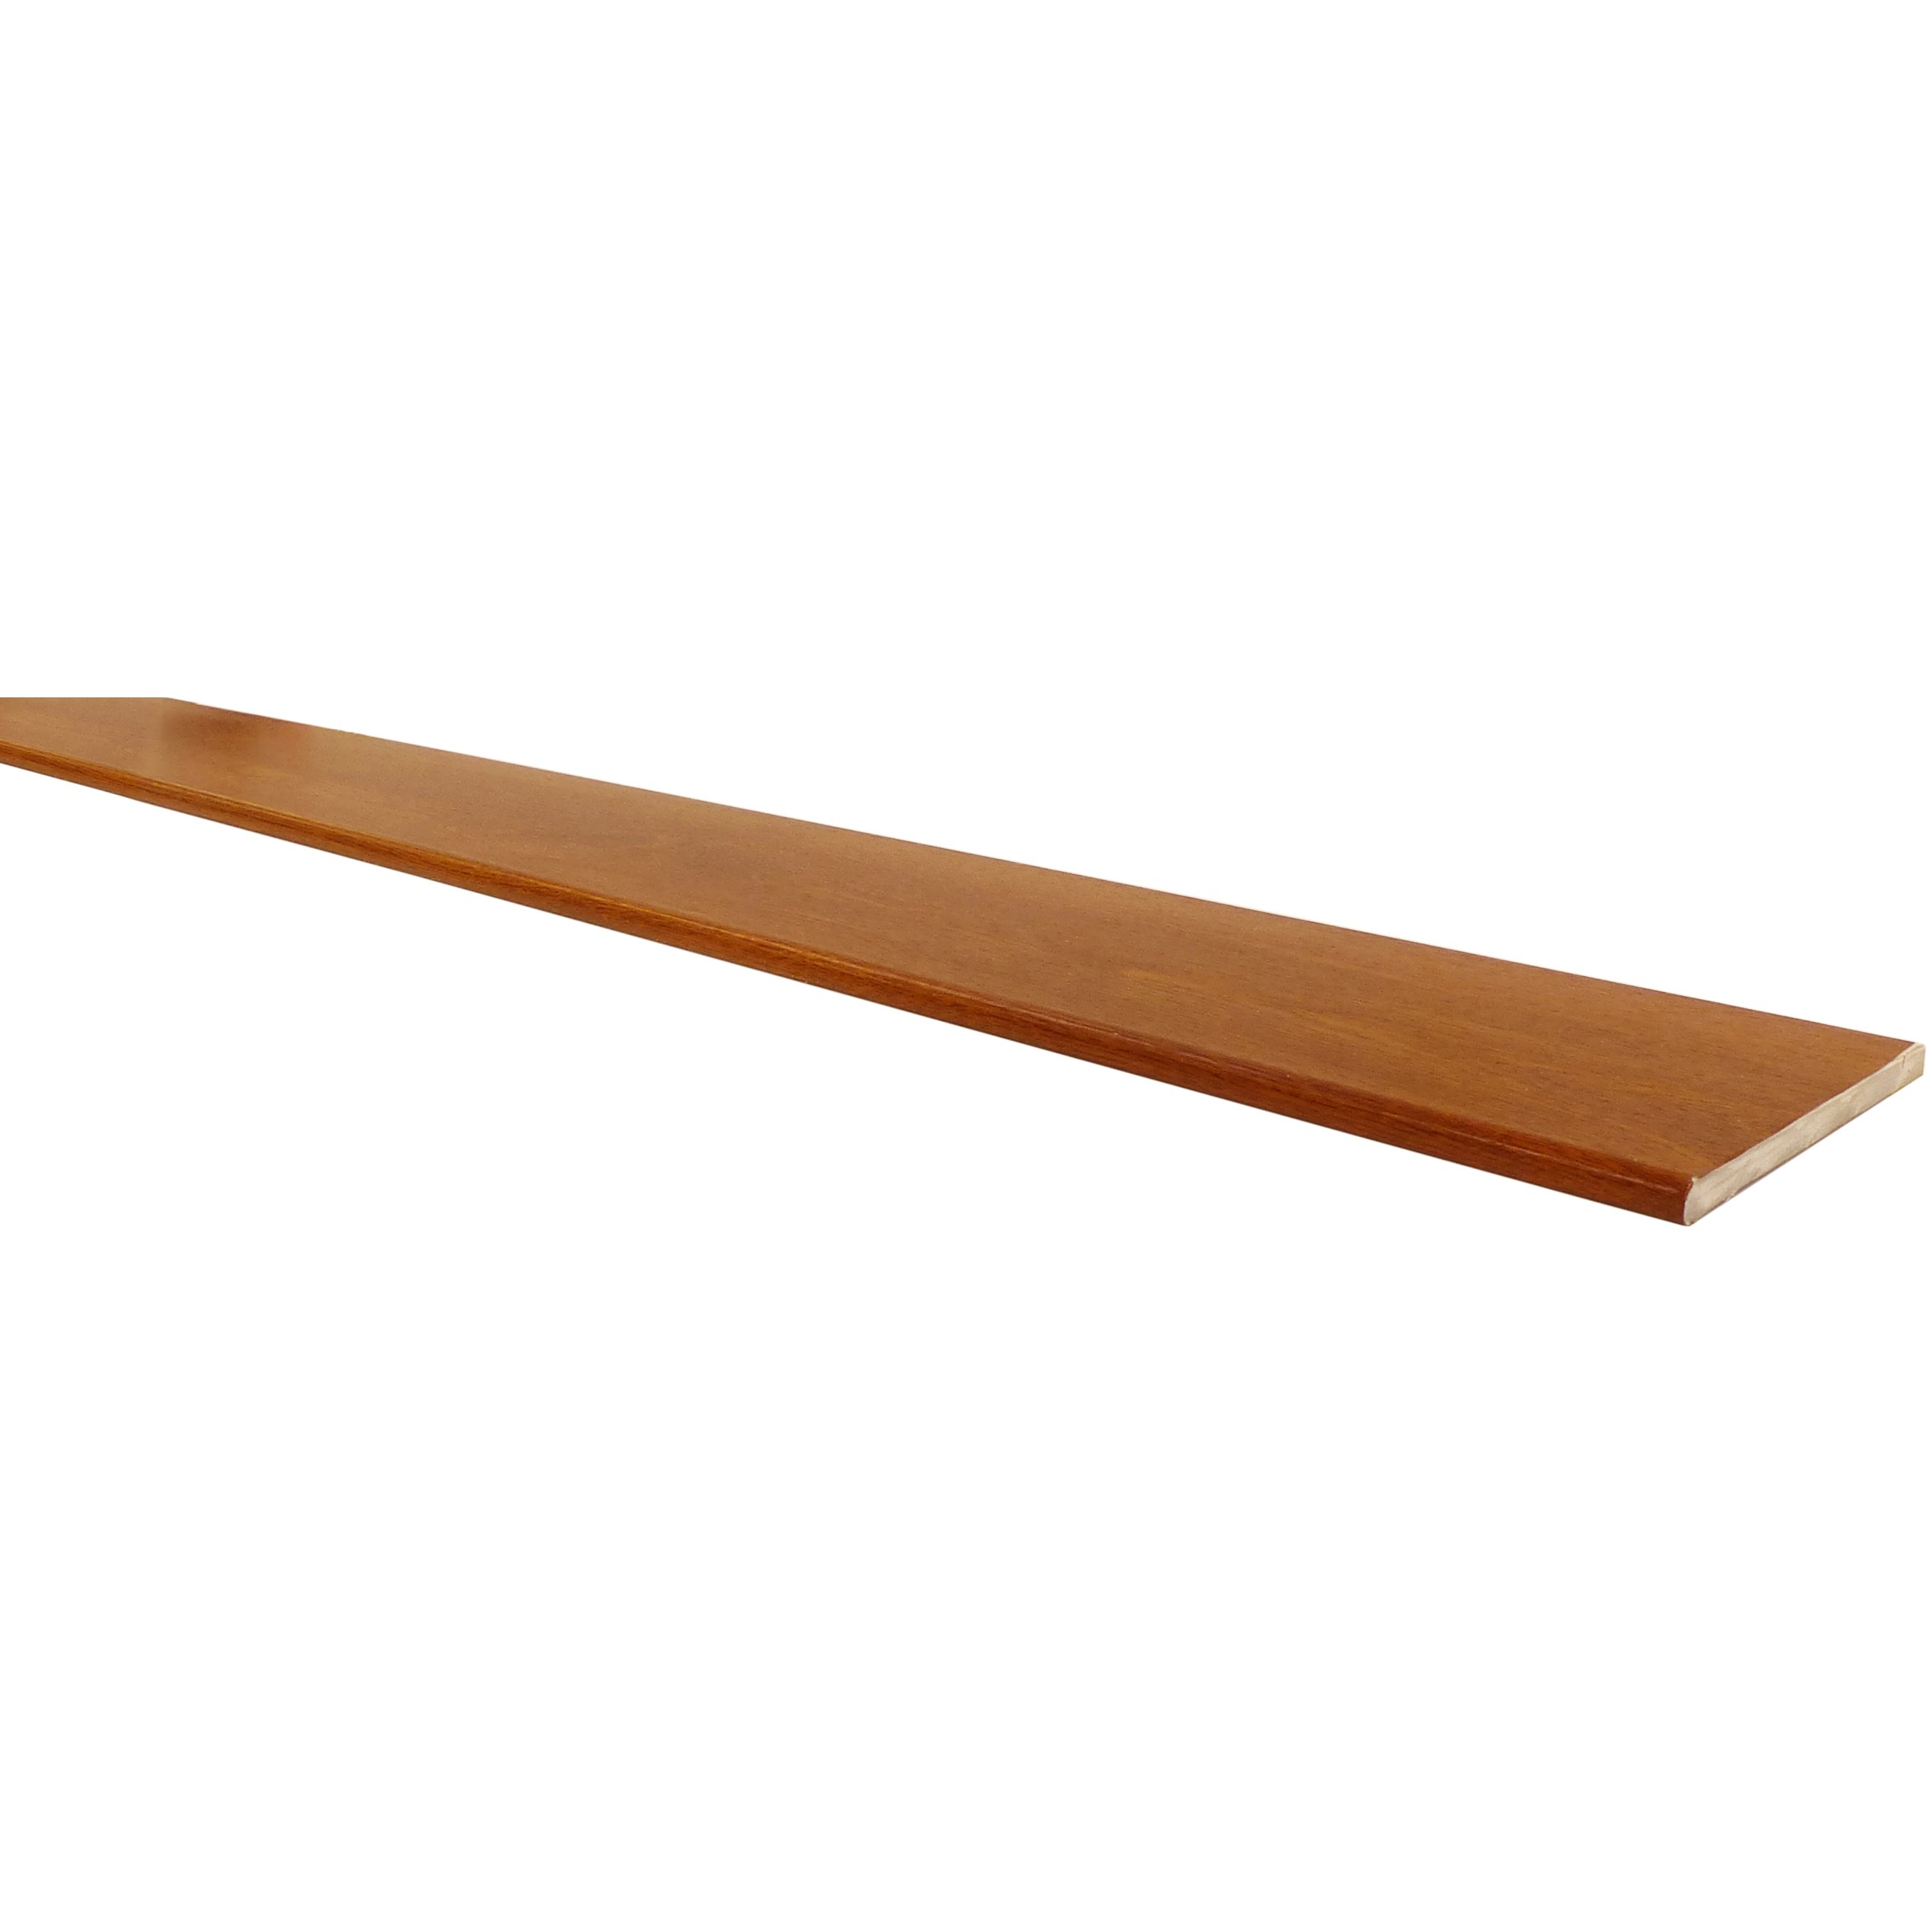 Freefoam 10mm Solid Soffit Board - Woodgrain Light Oak, 250mm, 5 metre